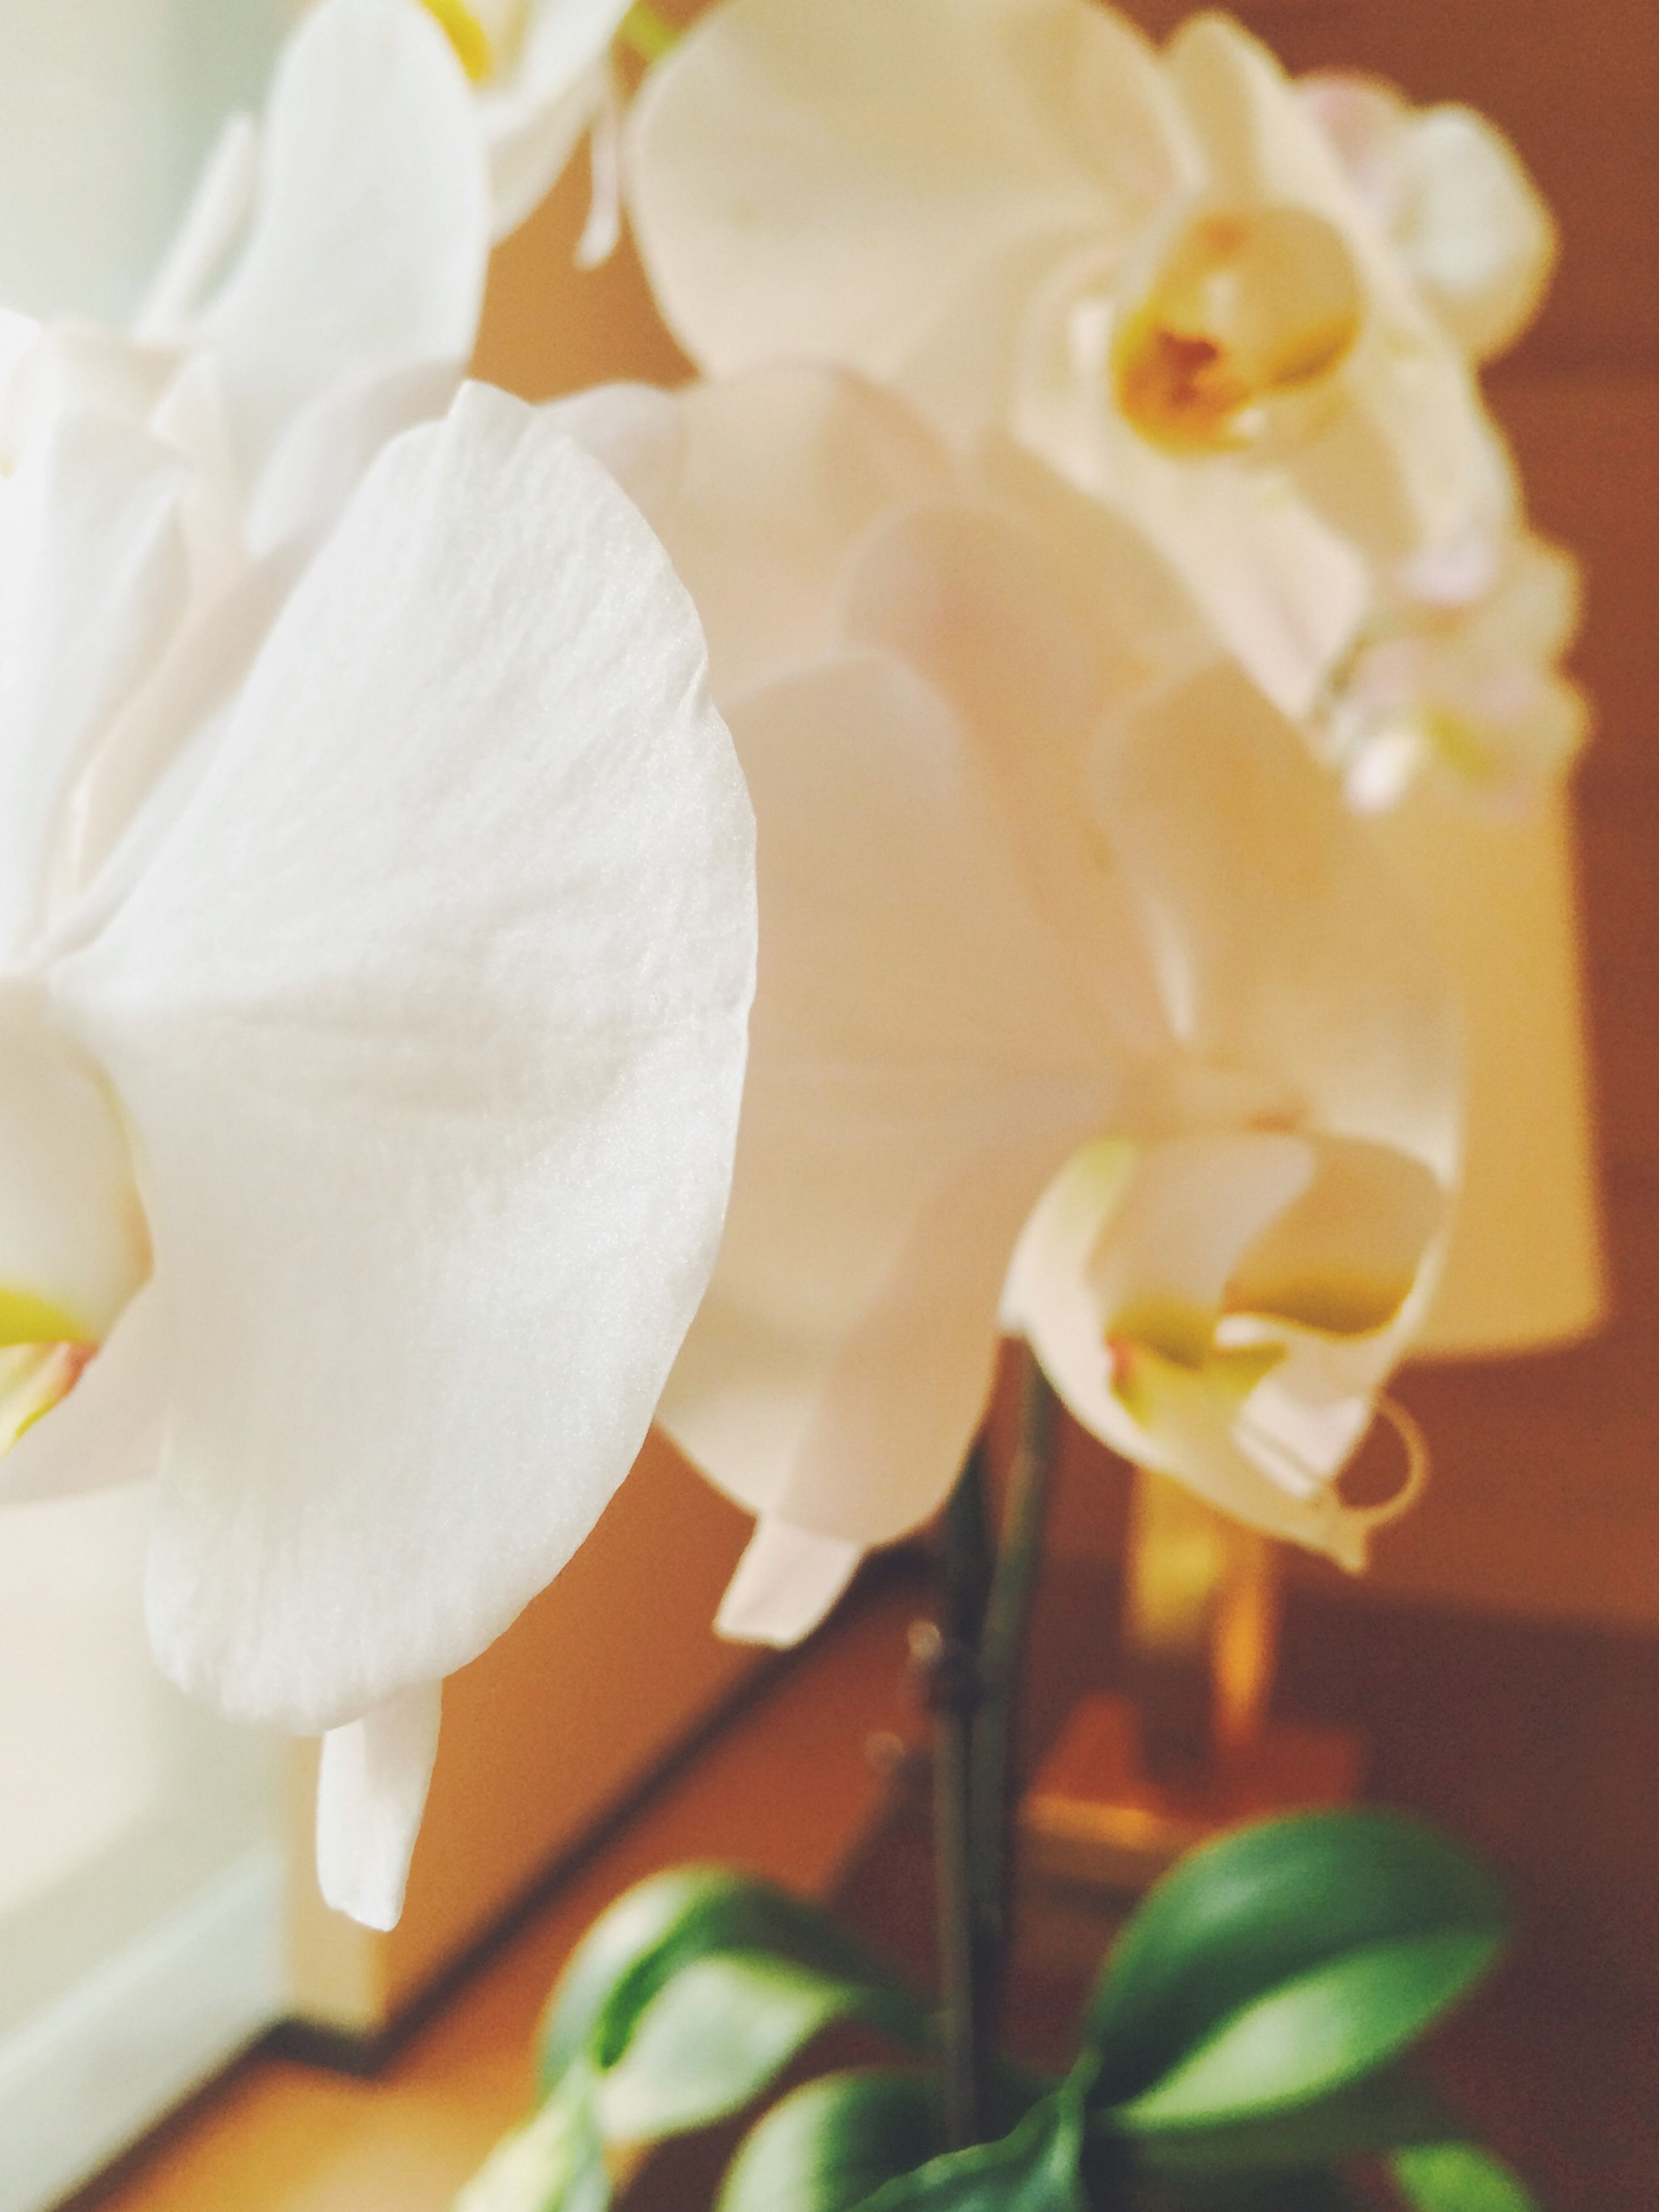 flower, petal, indoors, flower head, freshness, fragility, close-up, white color, beauty in nature, growth, vase, nature, table, focus on foreground, no people, plant, selective focus, blooming, yellow, home interior